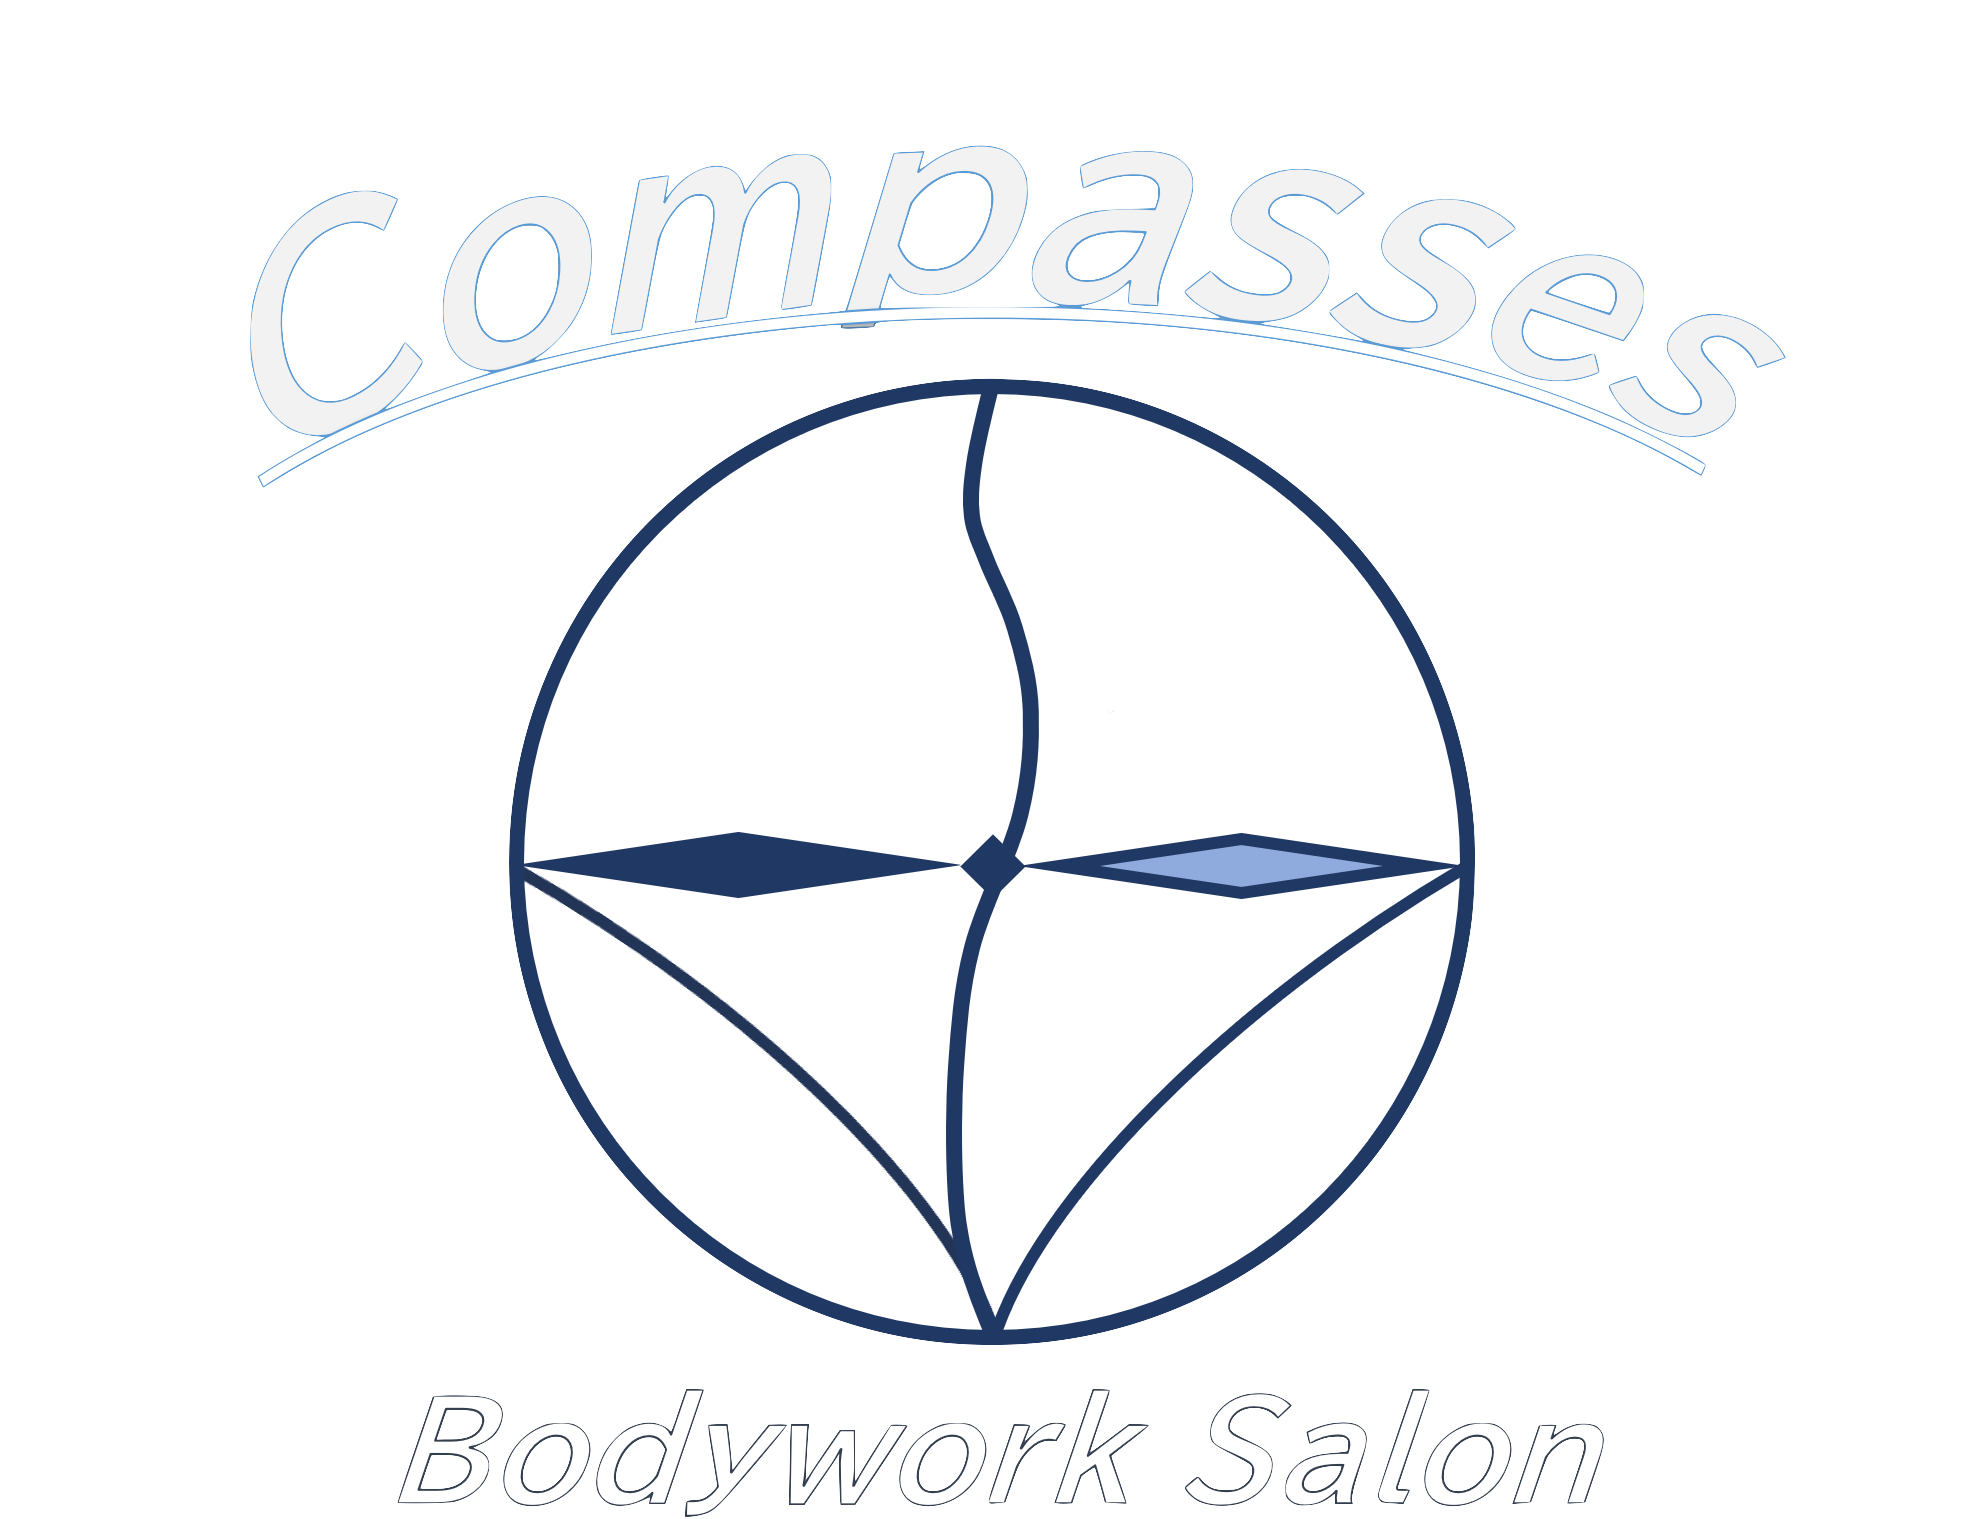 Bodywork Salon Compasses